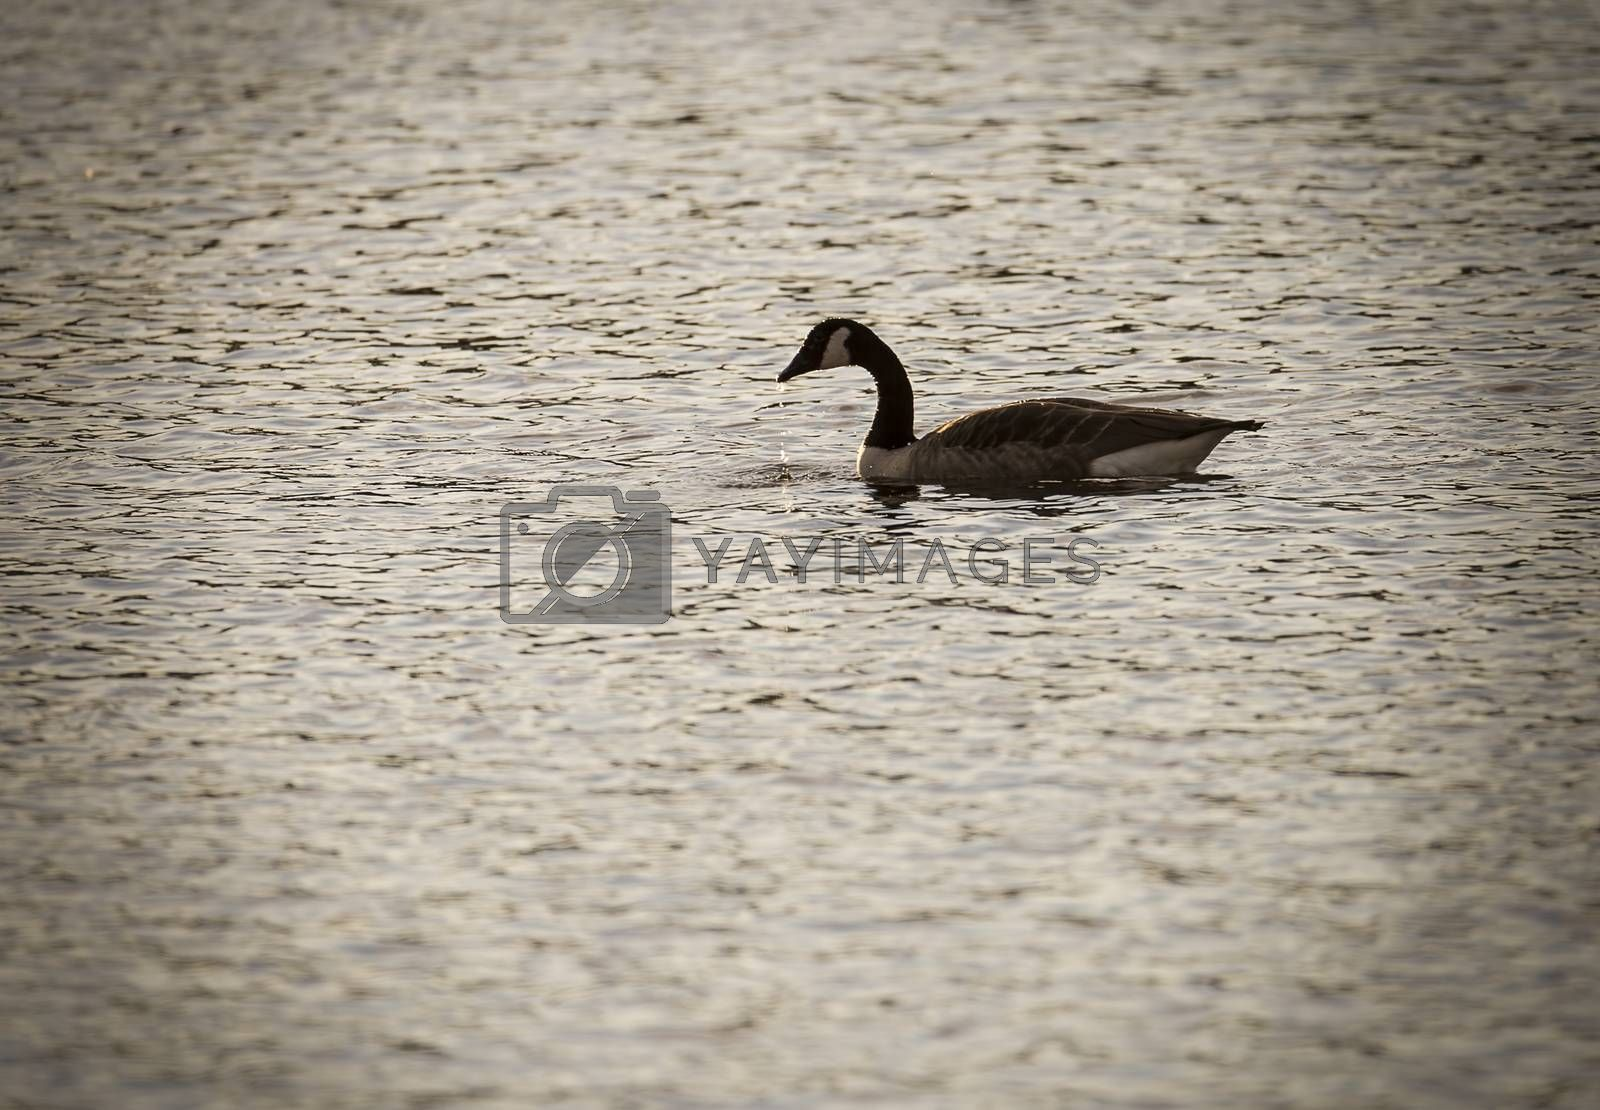 Canada Goose in Water with water dropping from beak.